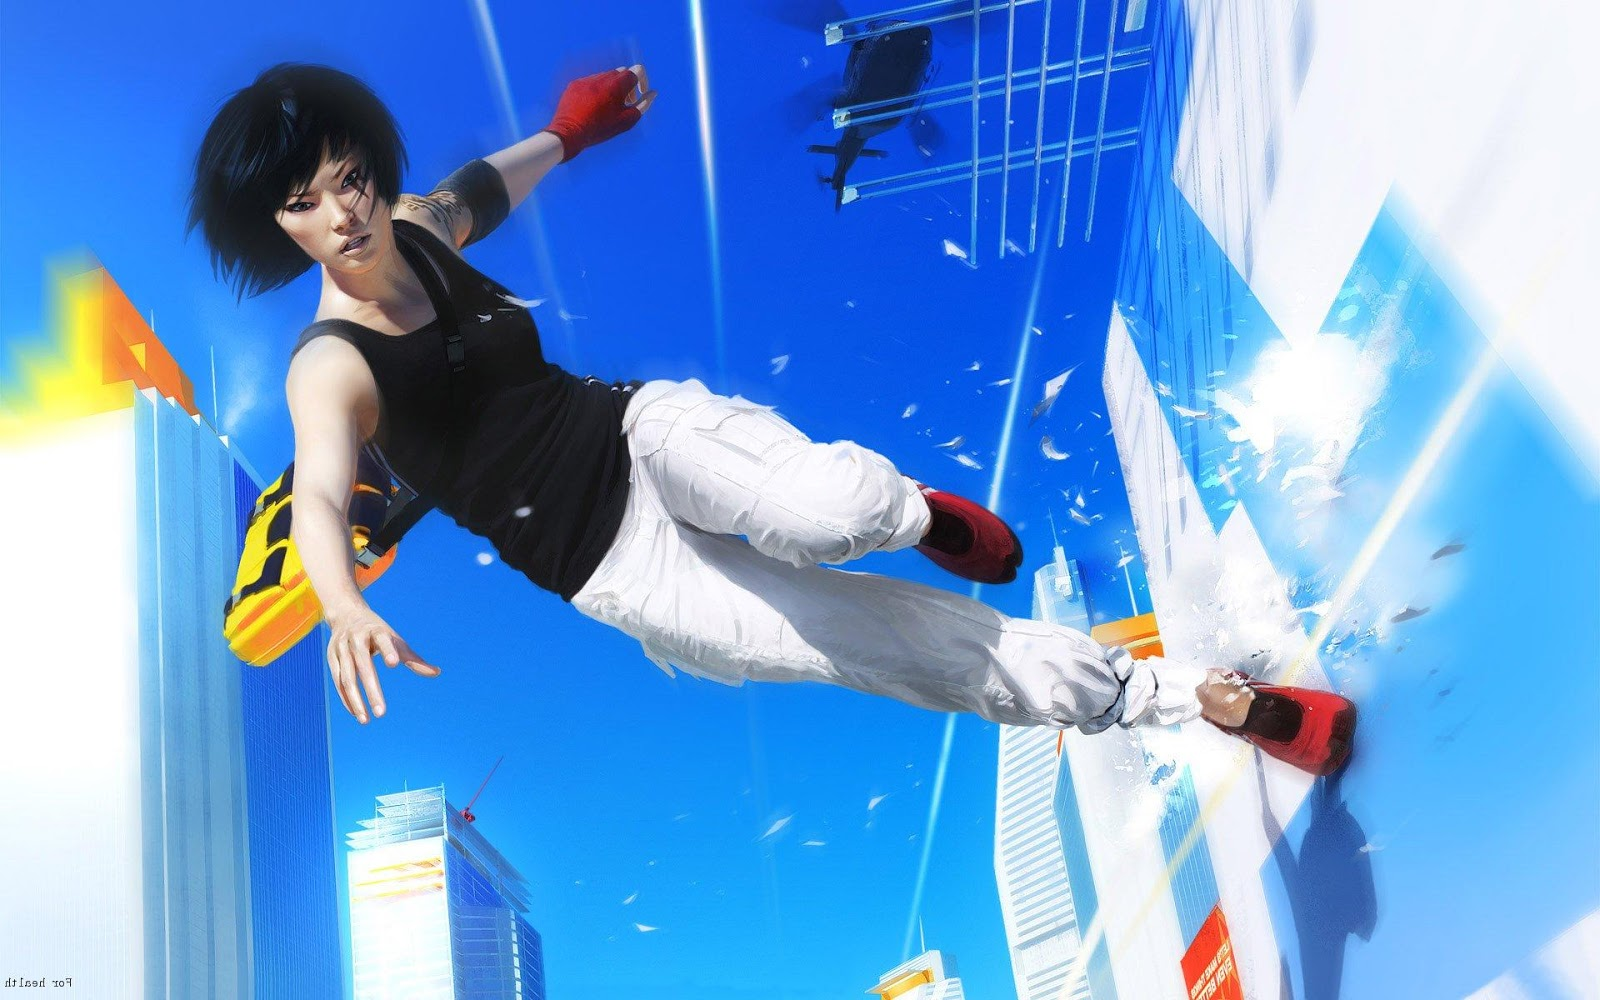 games that deserve movies and shows - MIRROR'S EDGE